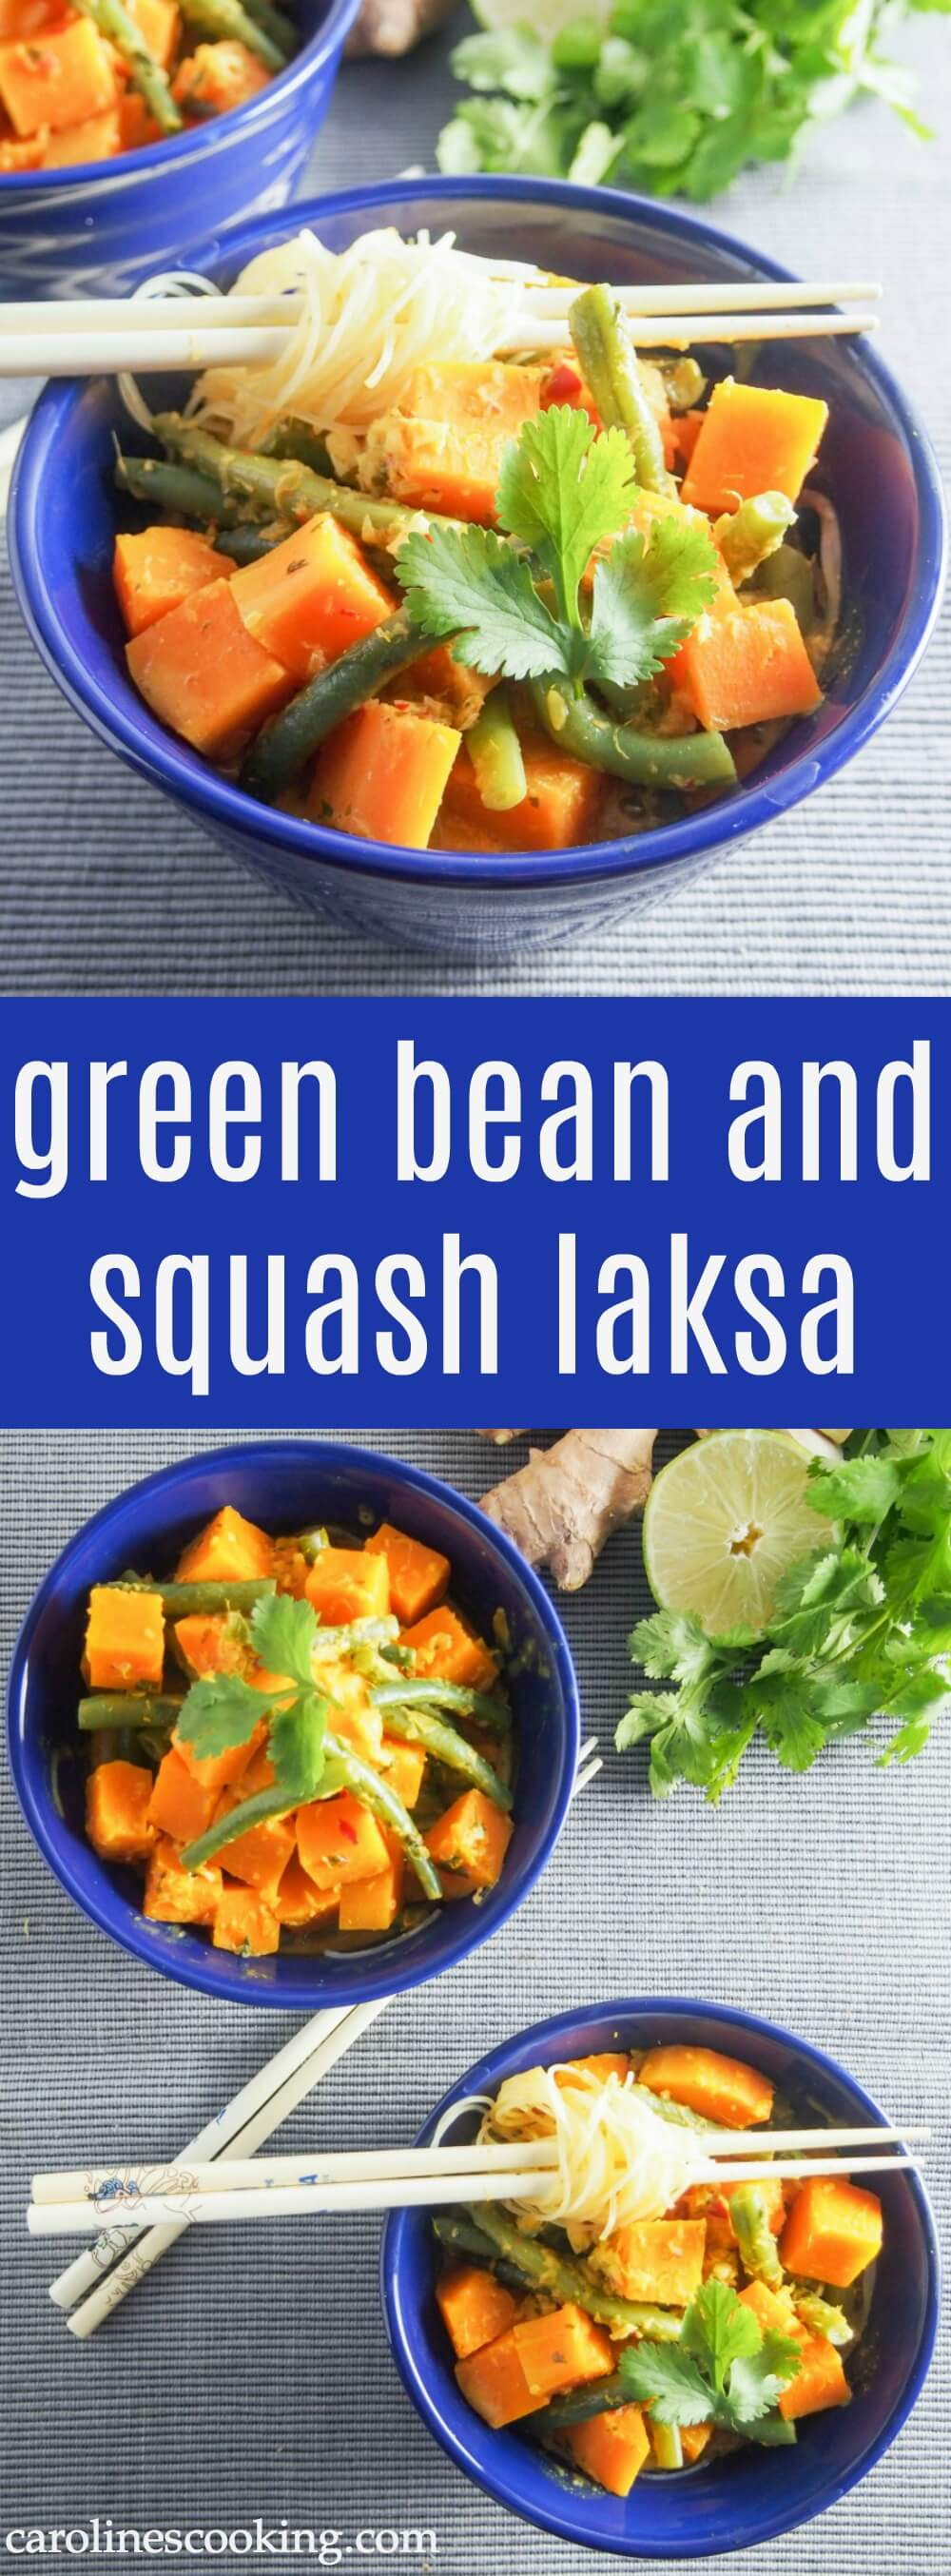 This green bean and squash laksa is a delicious veggie take on the classic coconuty noodle dish - spice it up or down, it's full of flavor either way. Plus it's quick to make, even making the spice paste from scratch. Easily made vegan.